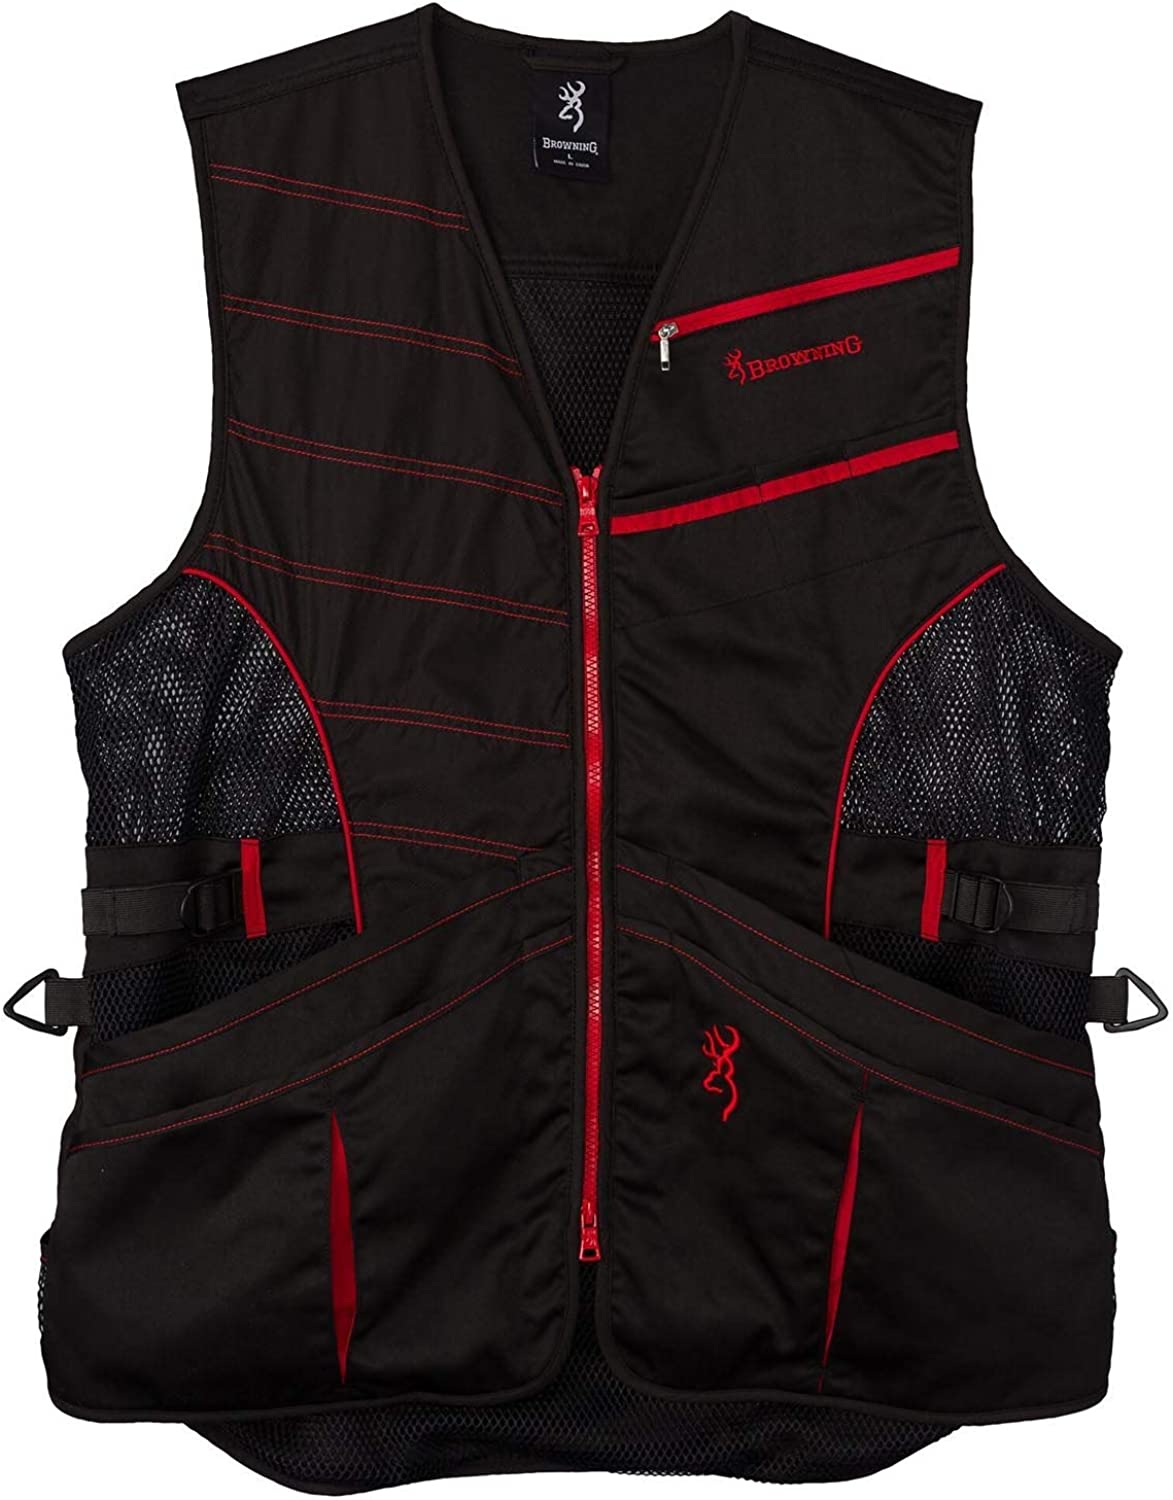 Browning Vest Ace Shooting Black/Red